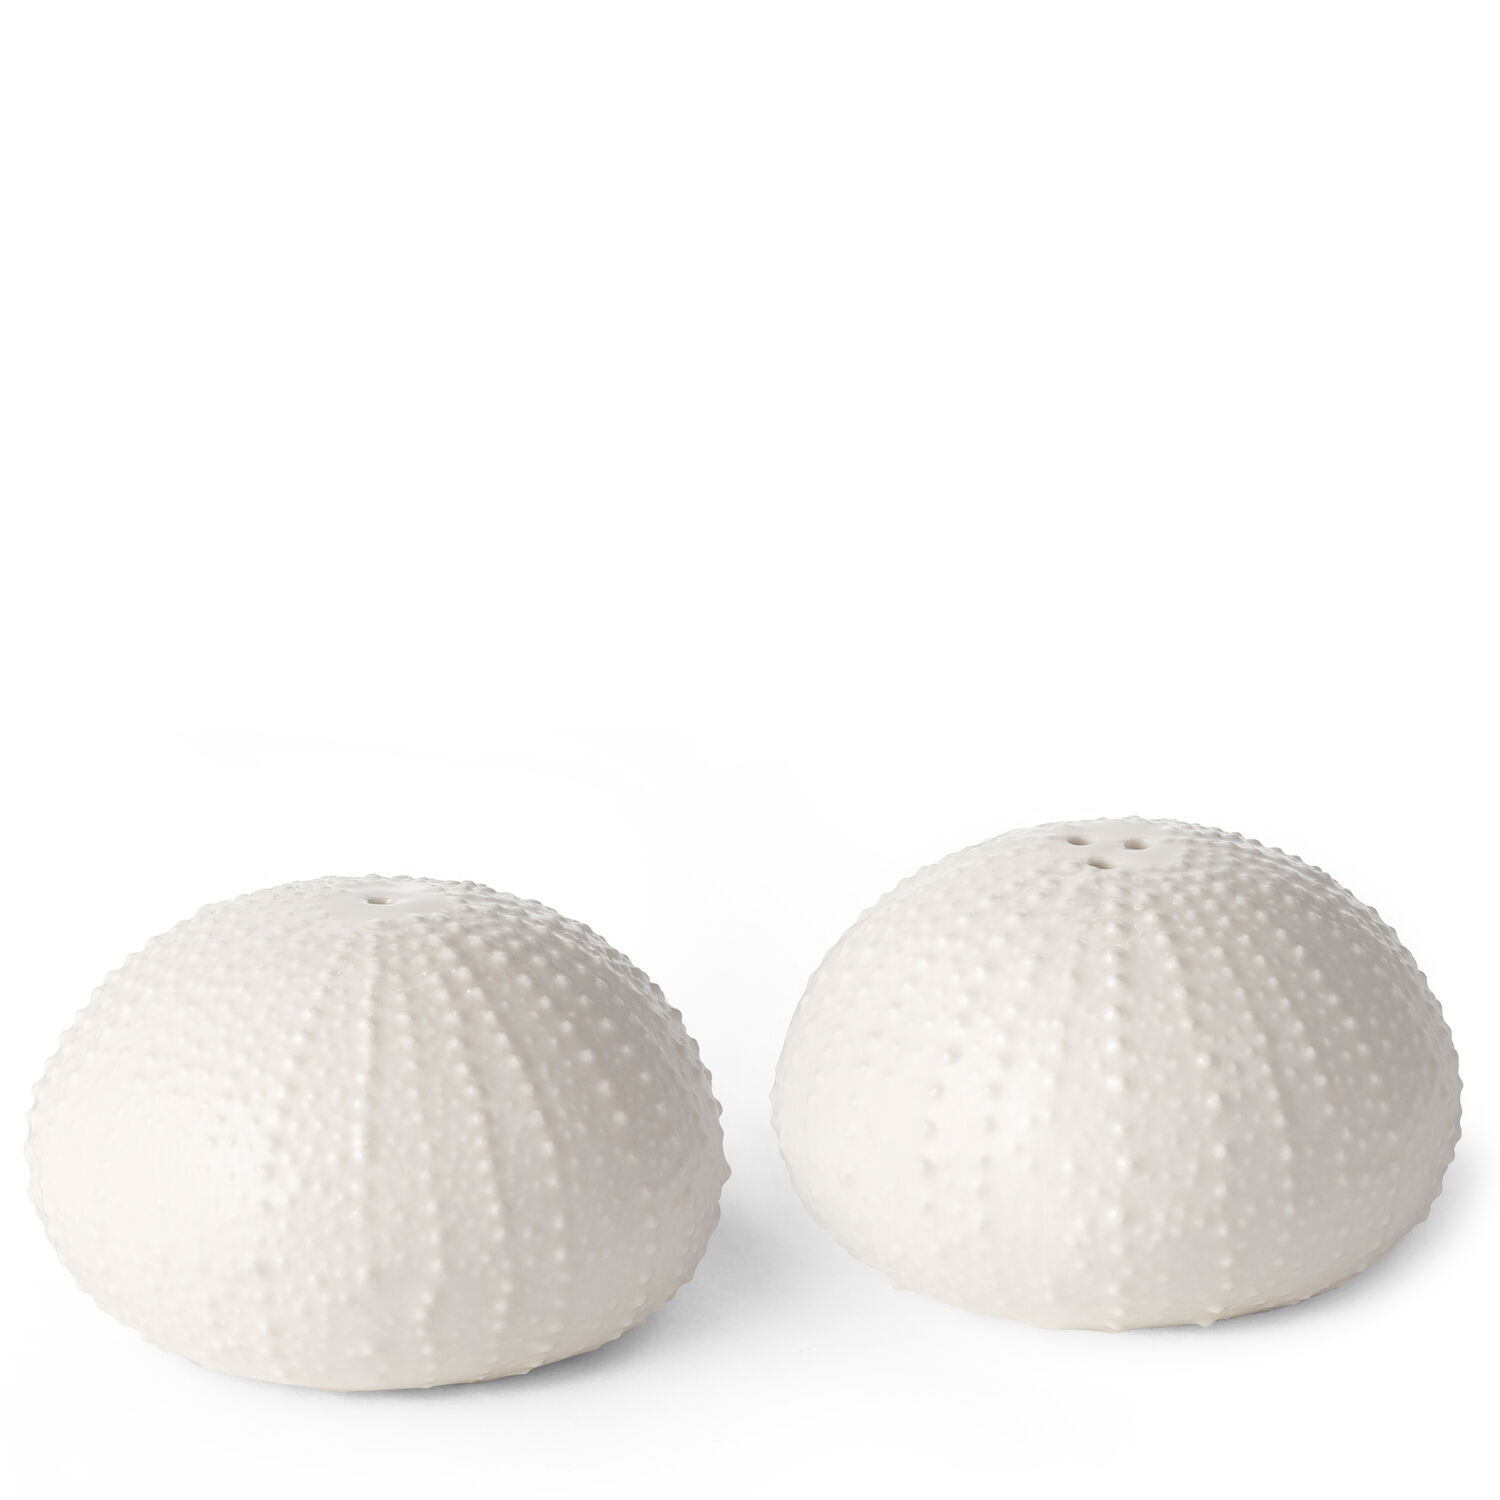 Sea Urchin Salt and Pepper Shakers